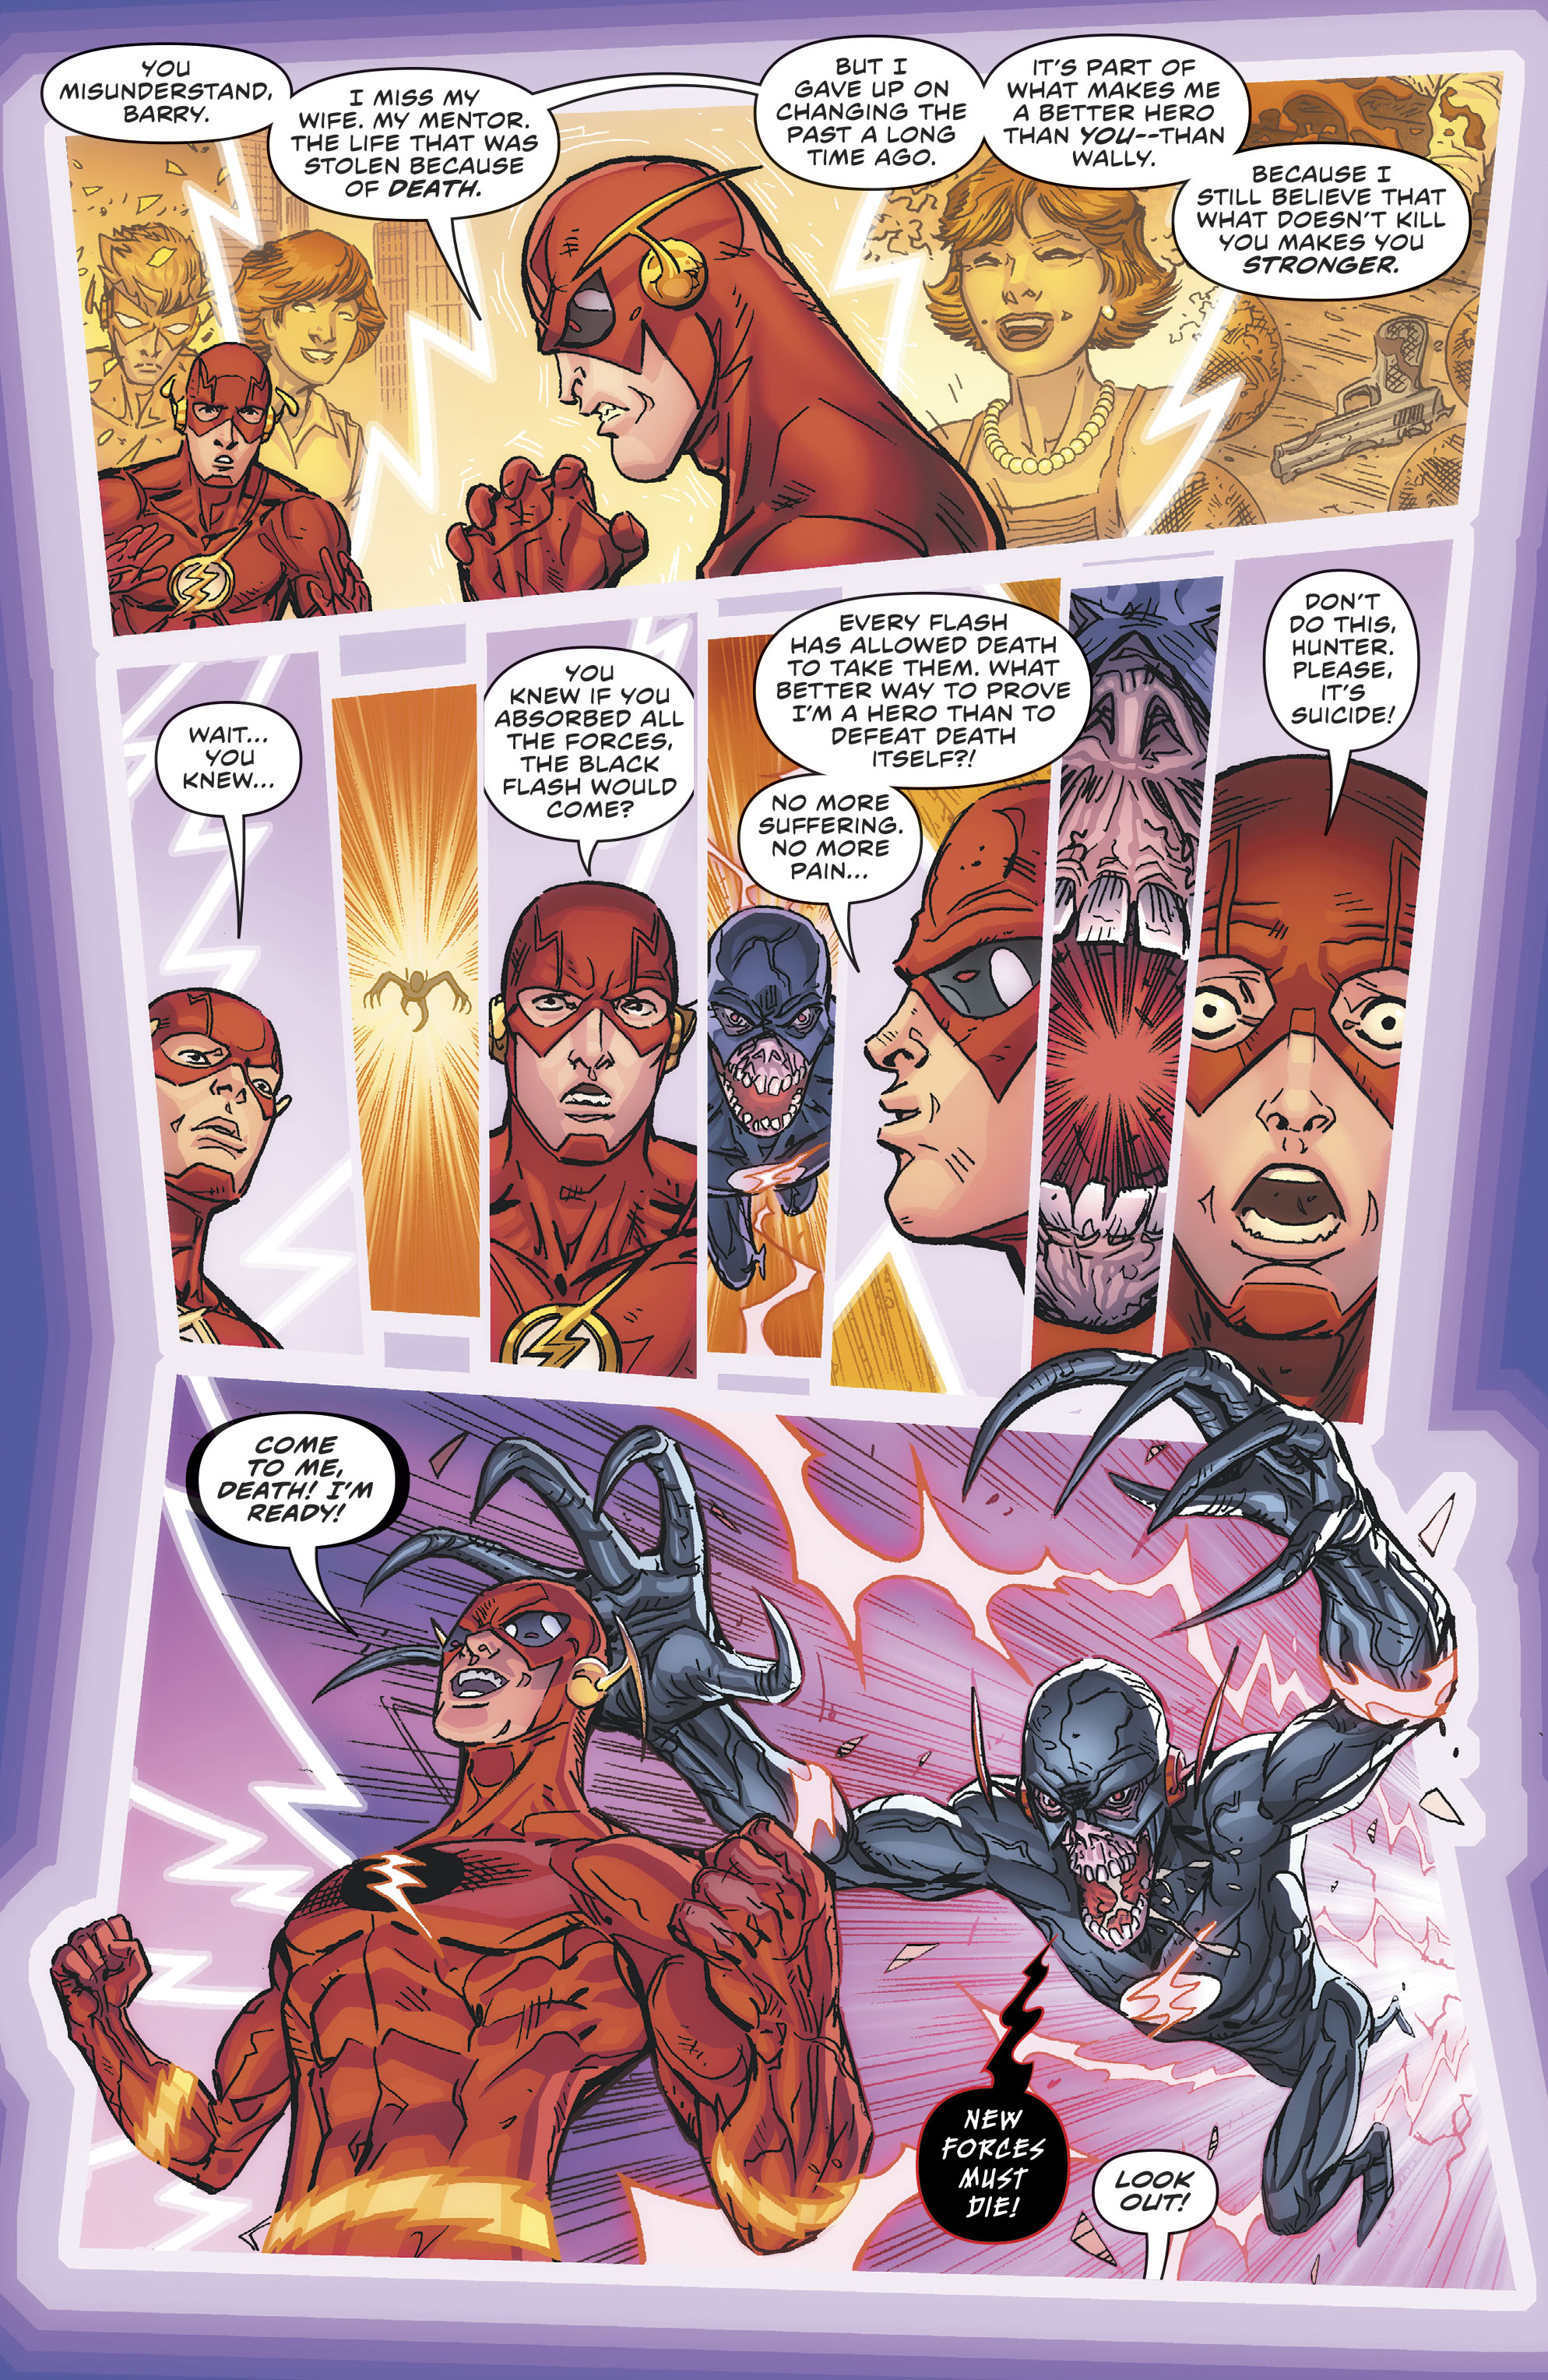 Dc Comics Universe The Flash 80 Spoilers Review How Is The Ultimate Flash Of The Multiverse Yet Another New Force Debuts Plus A Flash Dies Inside Pulse